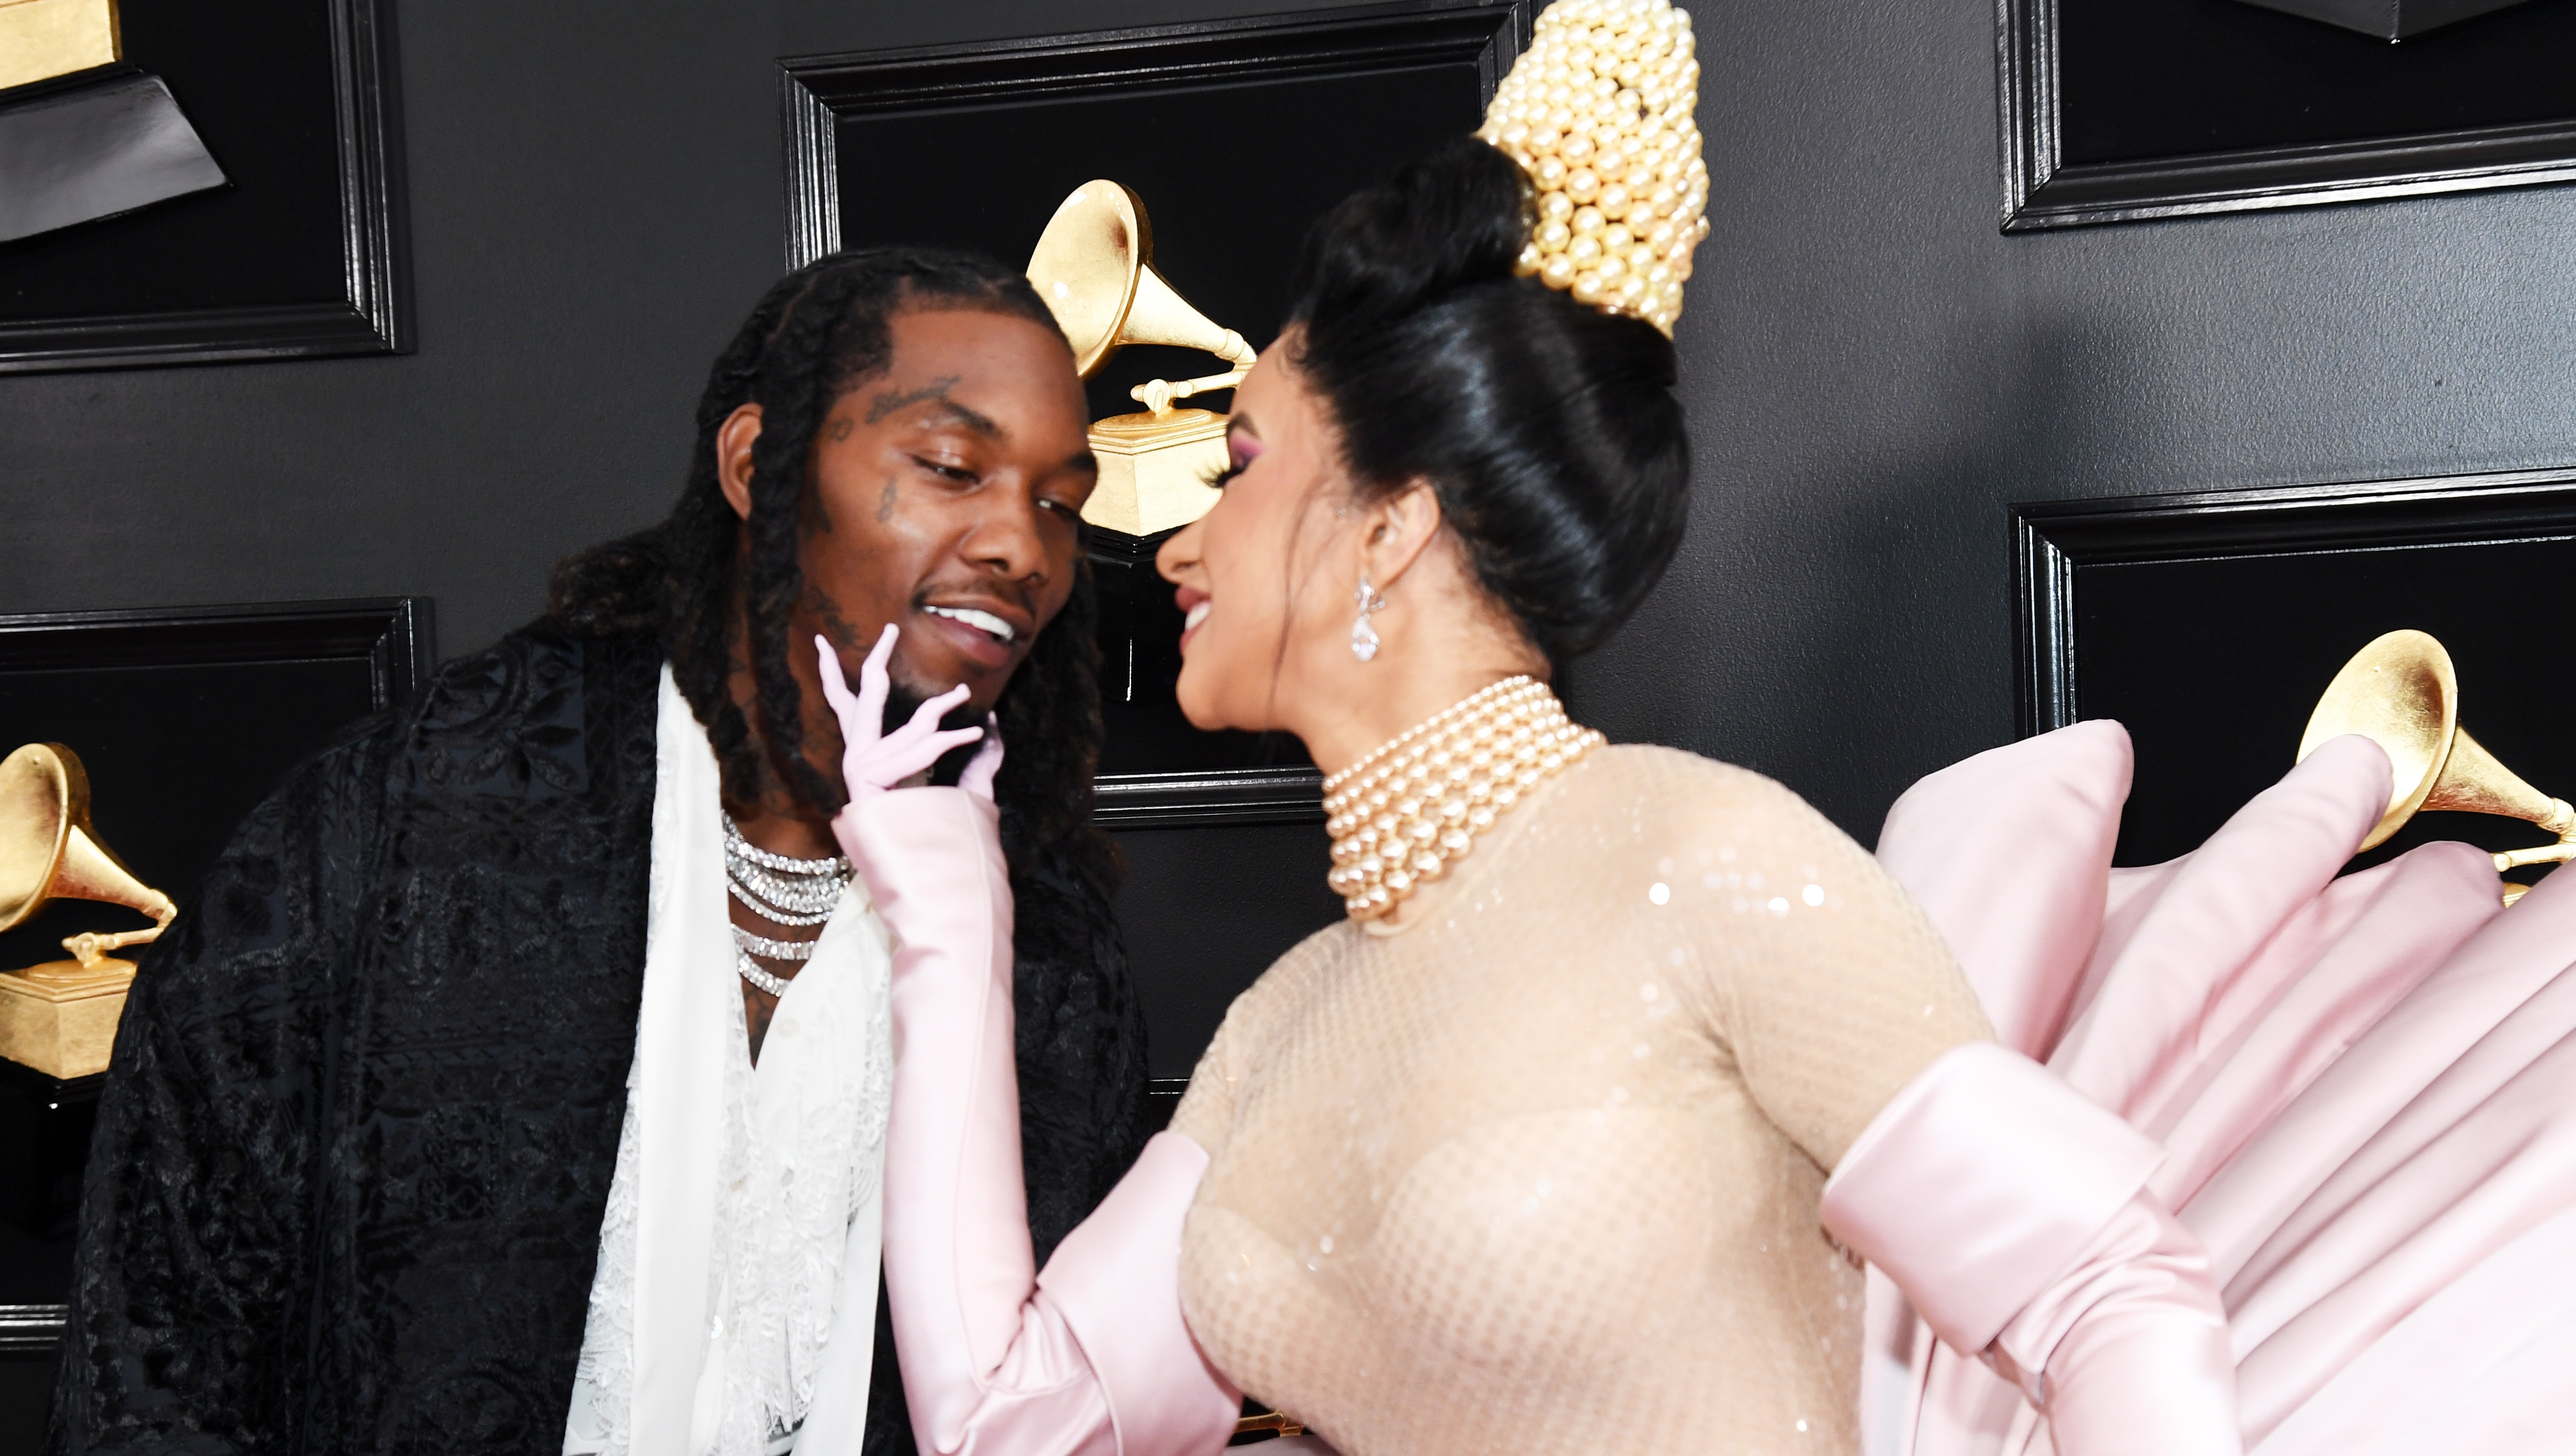 Cardi B and Offset kissing at the 2019 Grammy Awards